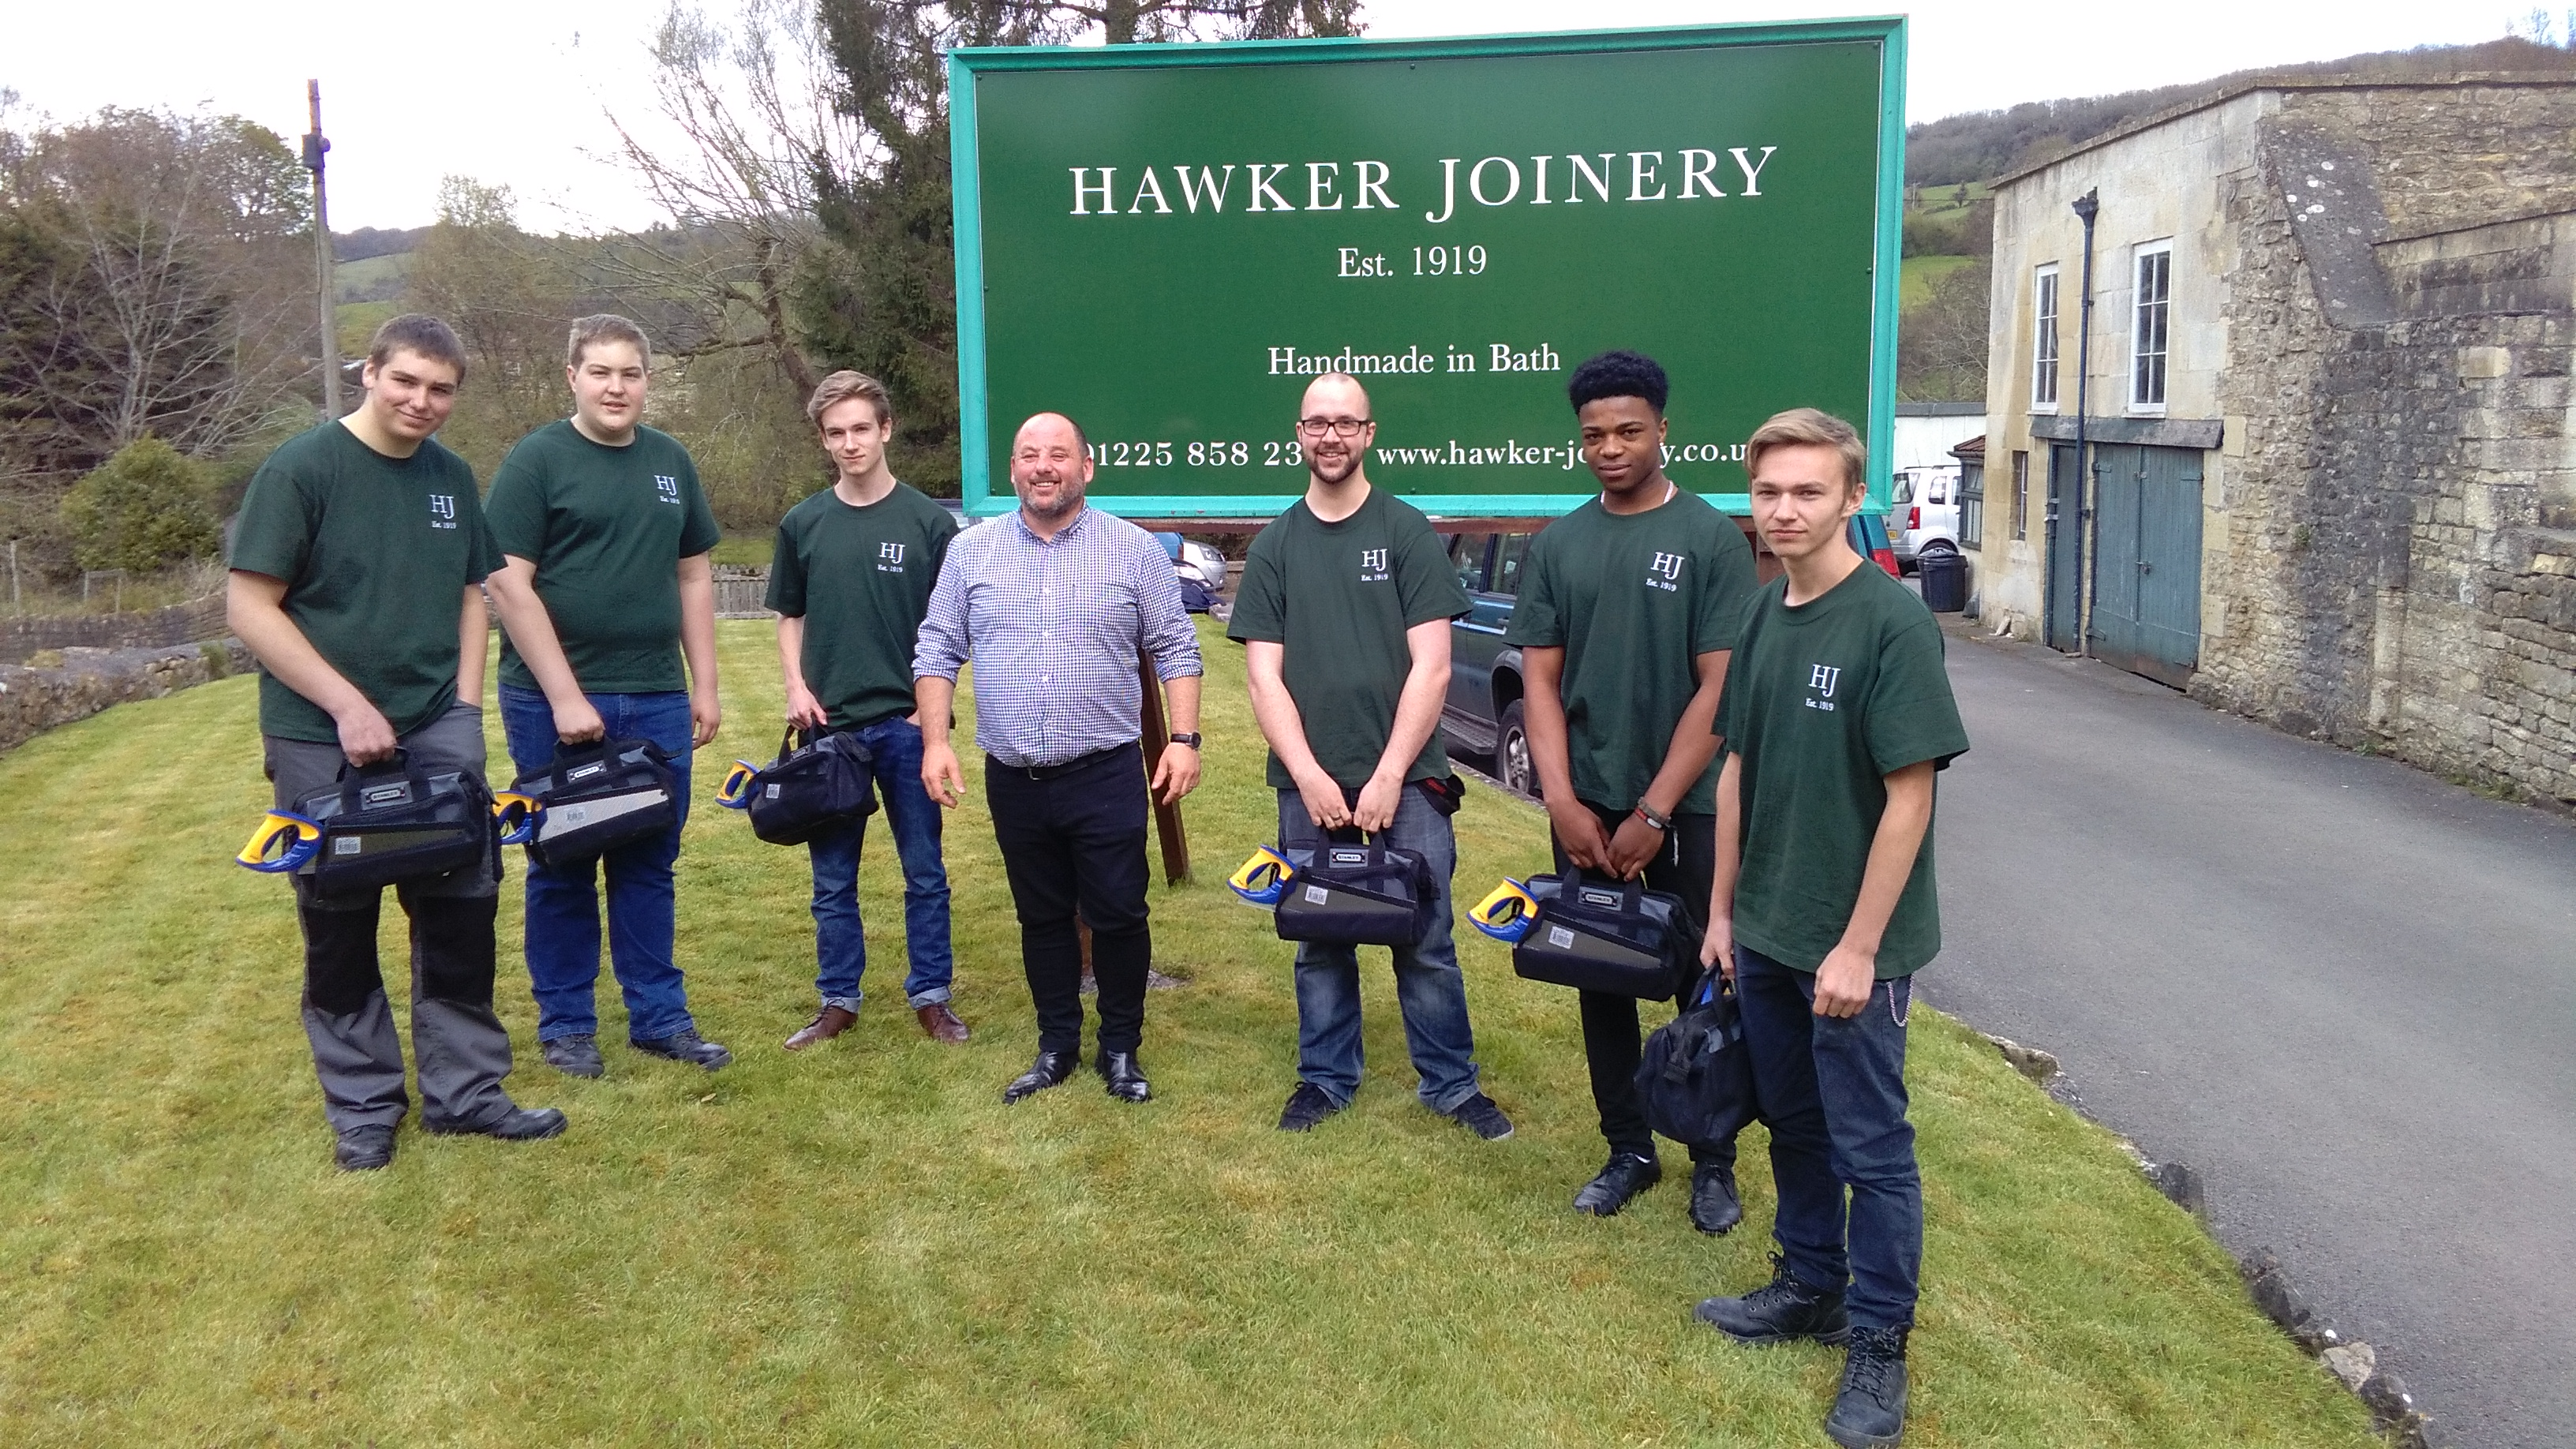 Hawker Joinery Apprentices